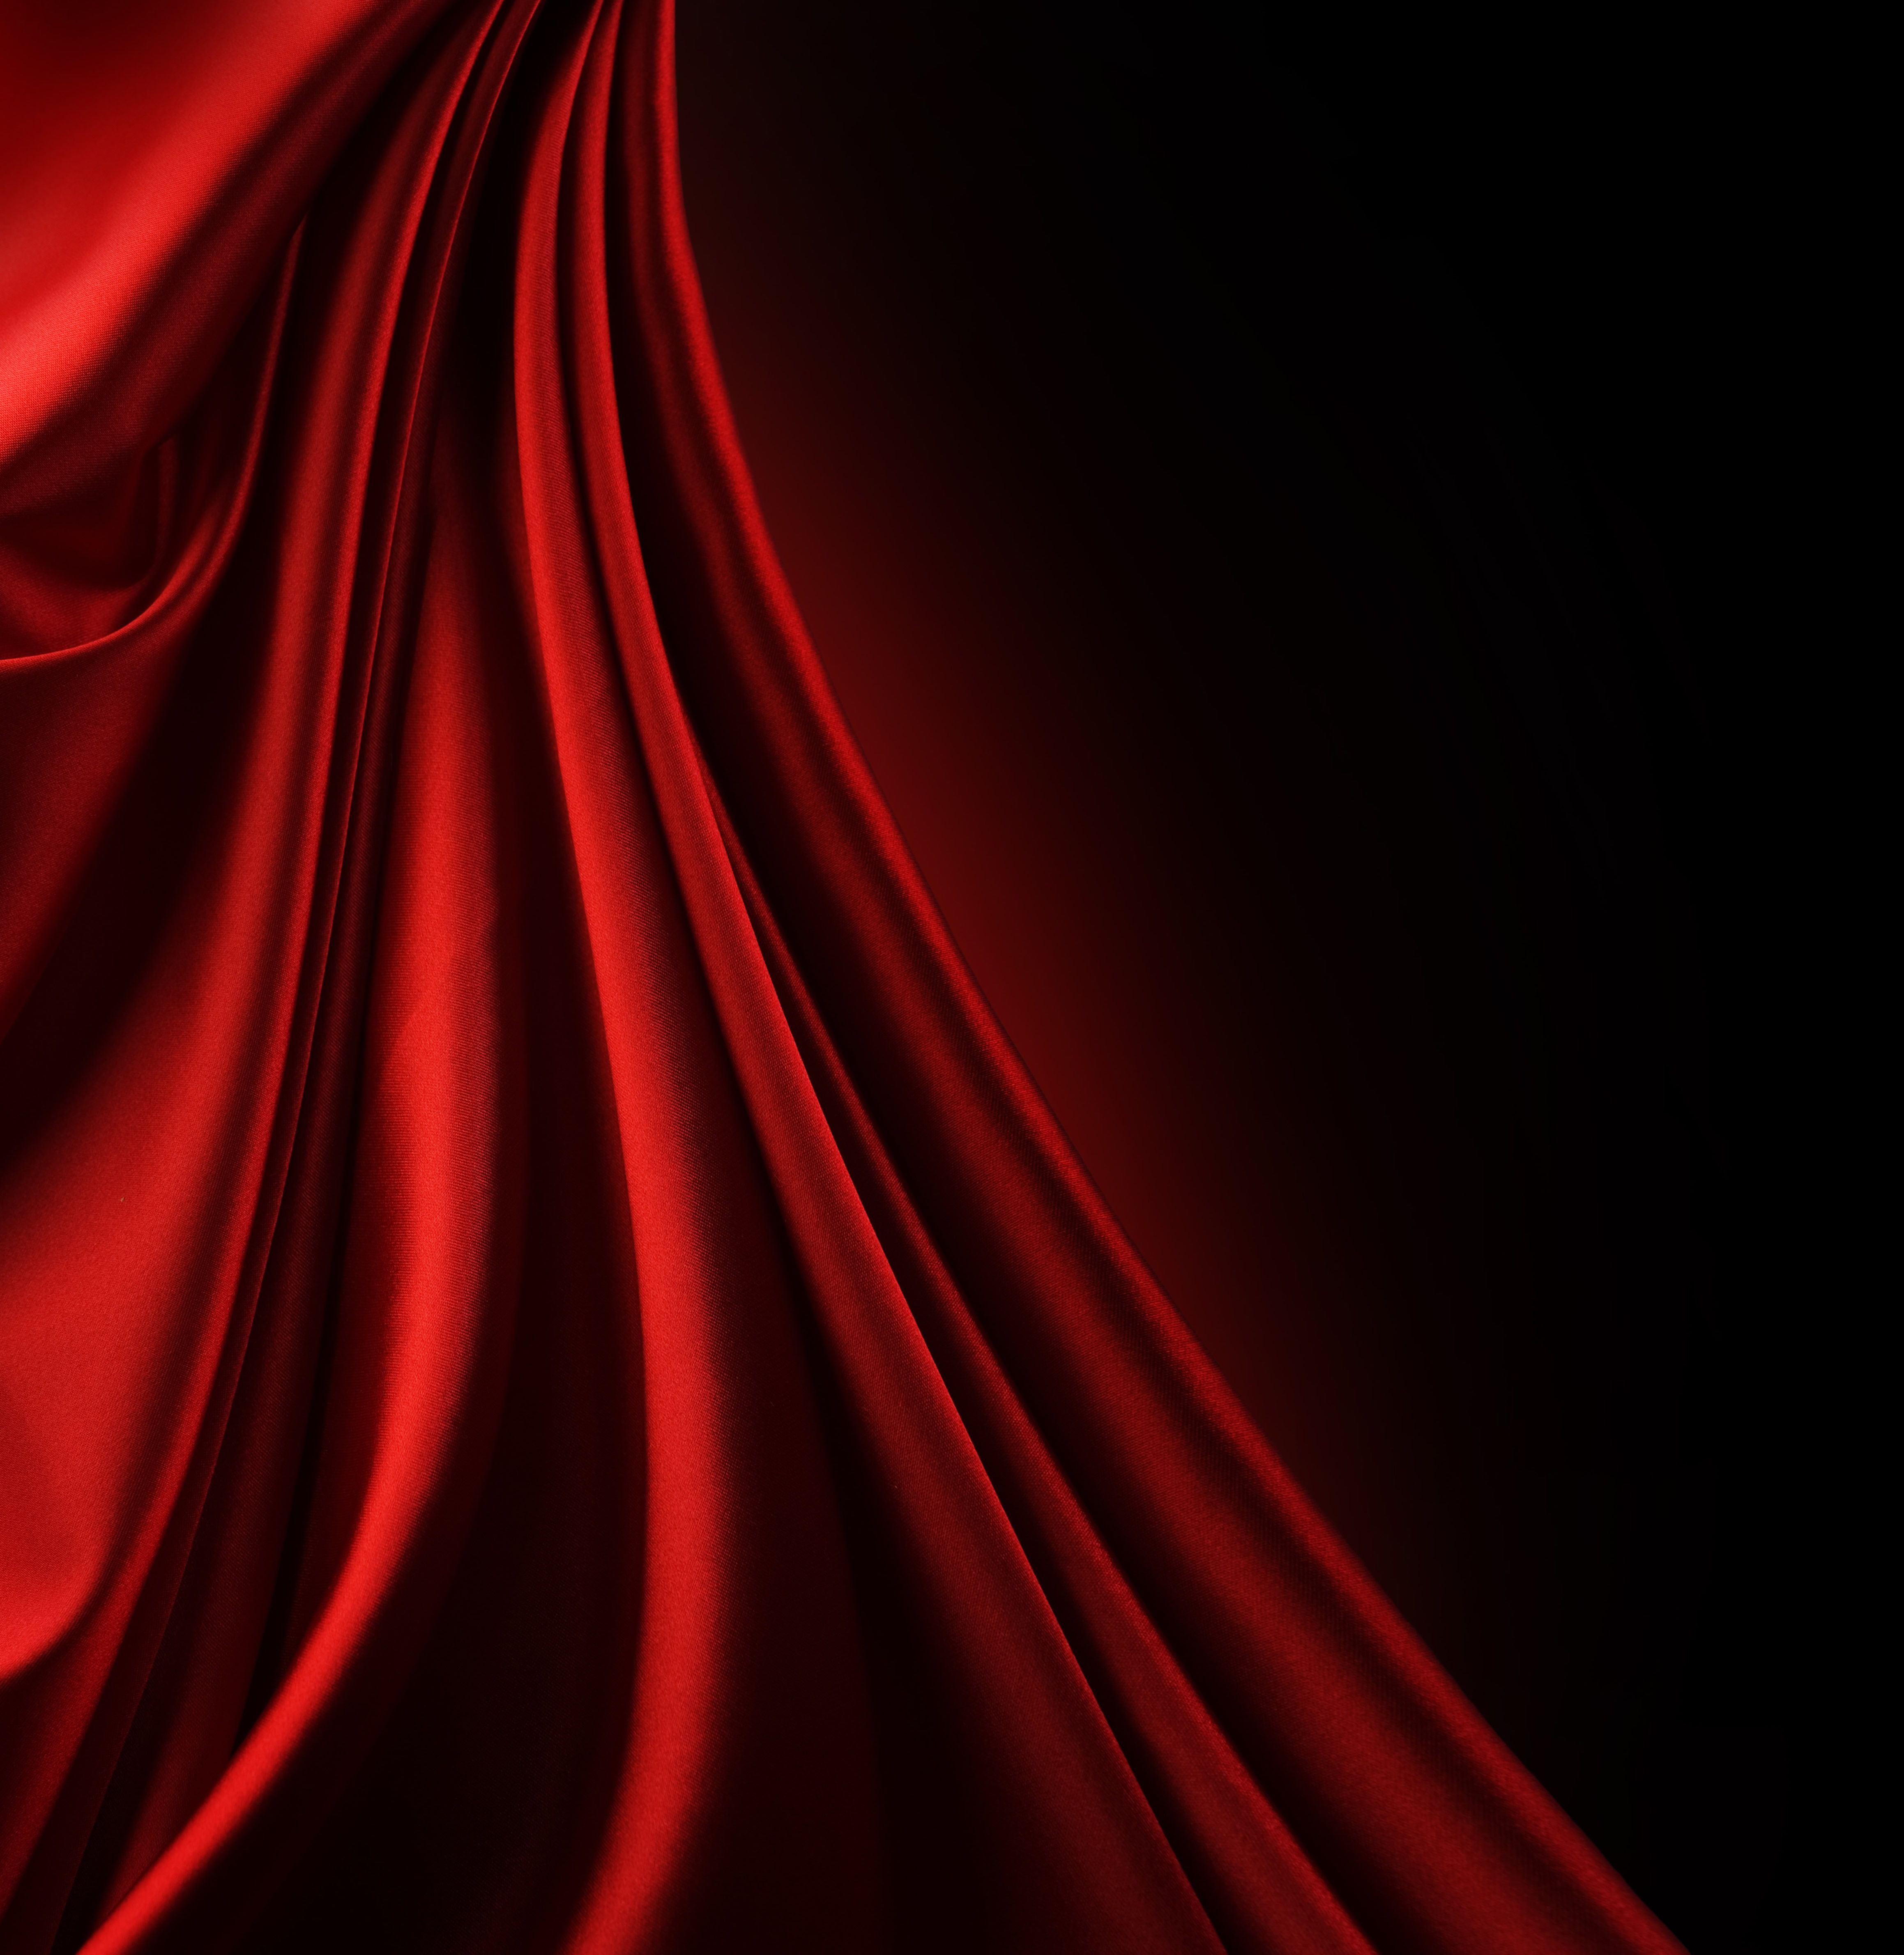 Download Texture Red Fabric Cloth Background Silk Download Photo Background Texture Red Satin Tex Red And Black Background Textured Background Red Fabric